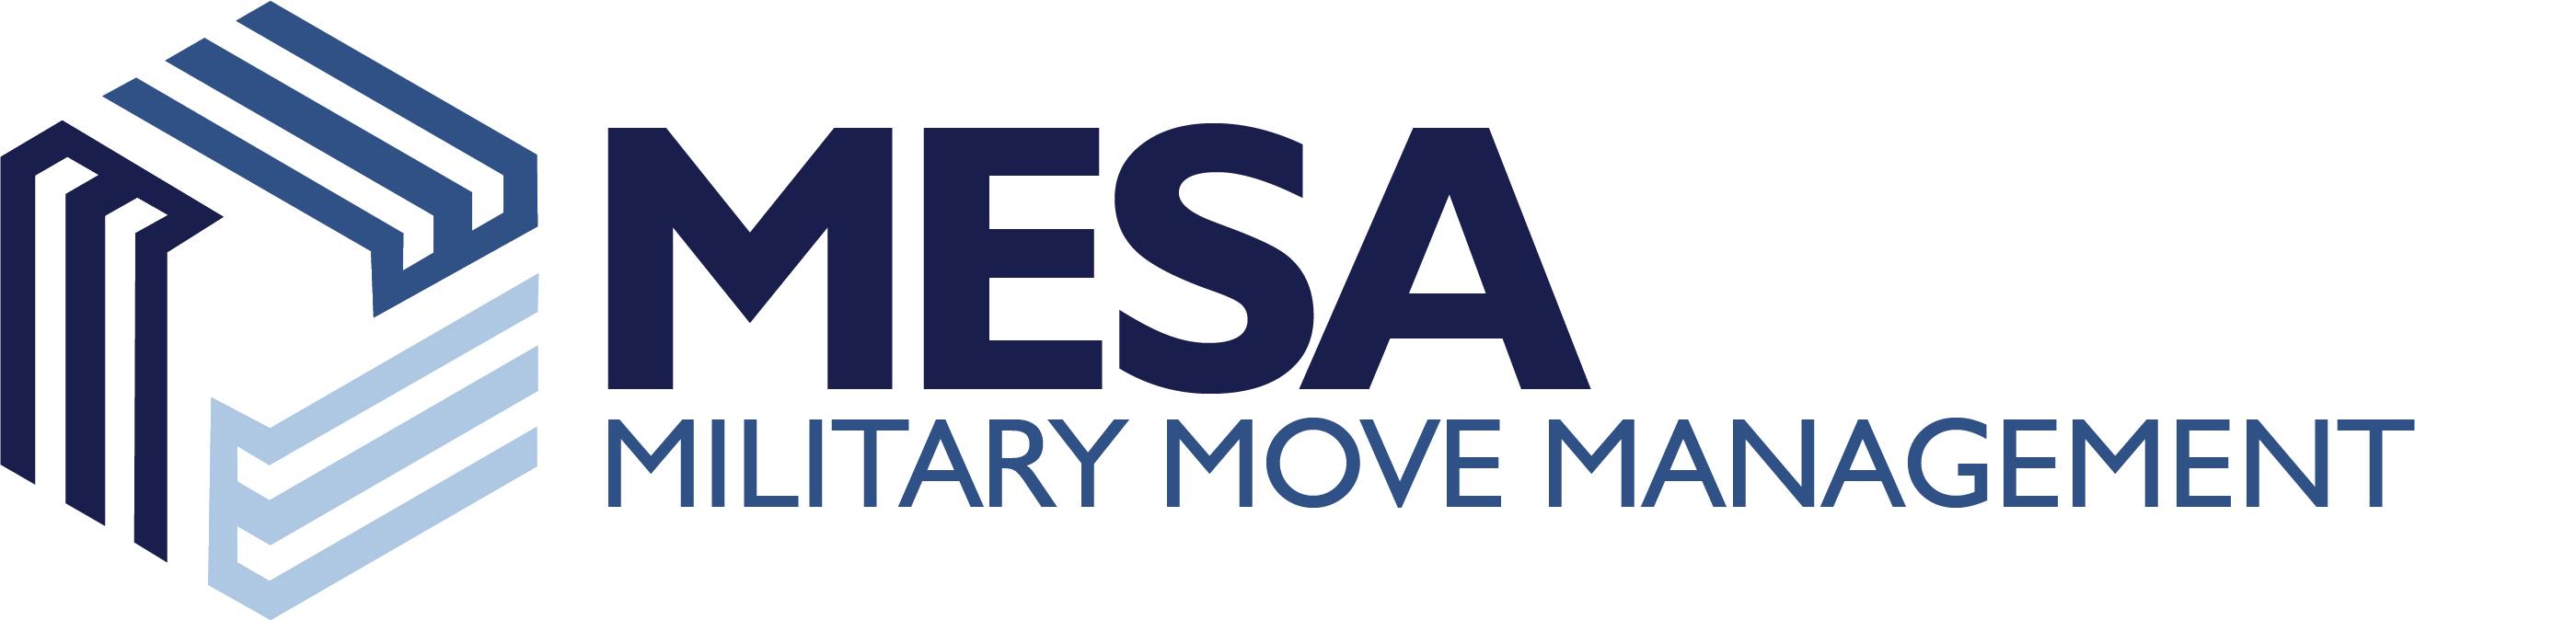 Mesa_Military_Move_Management_logo